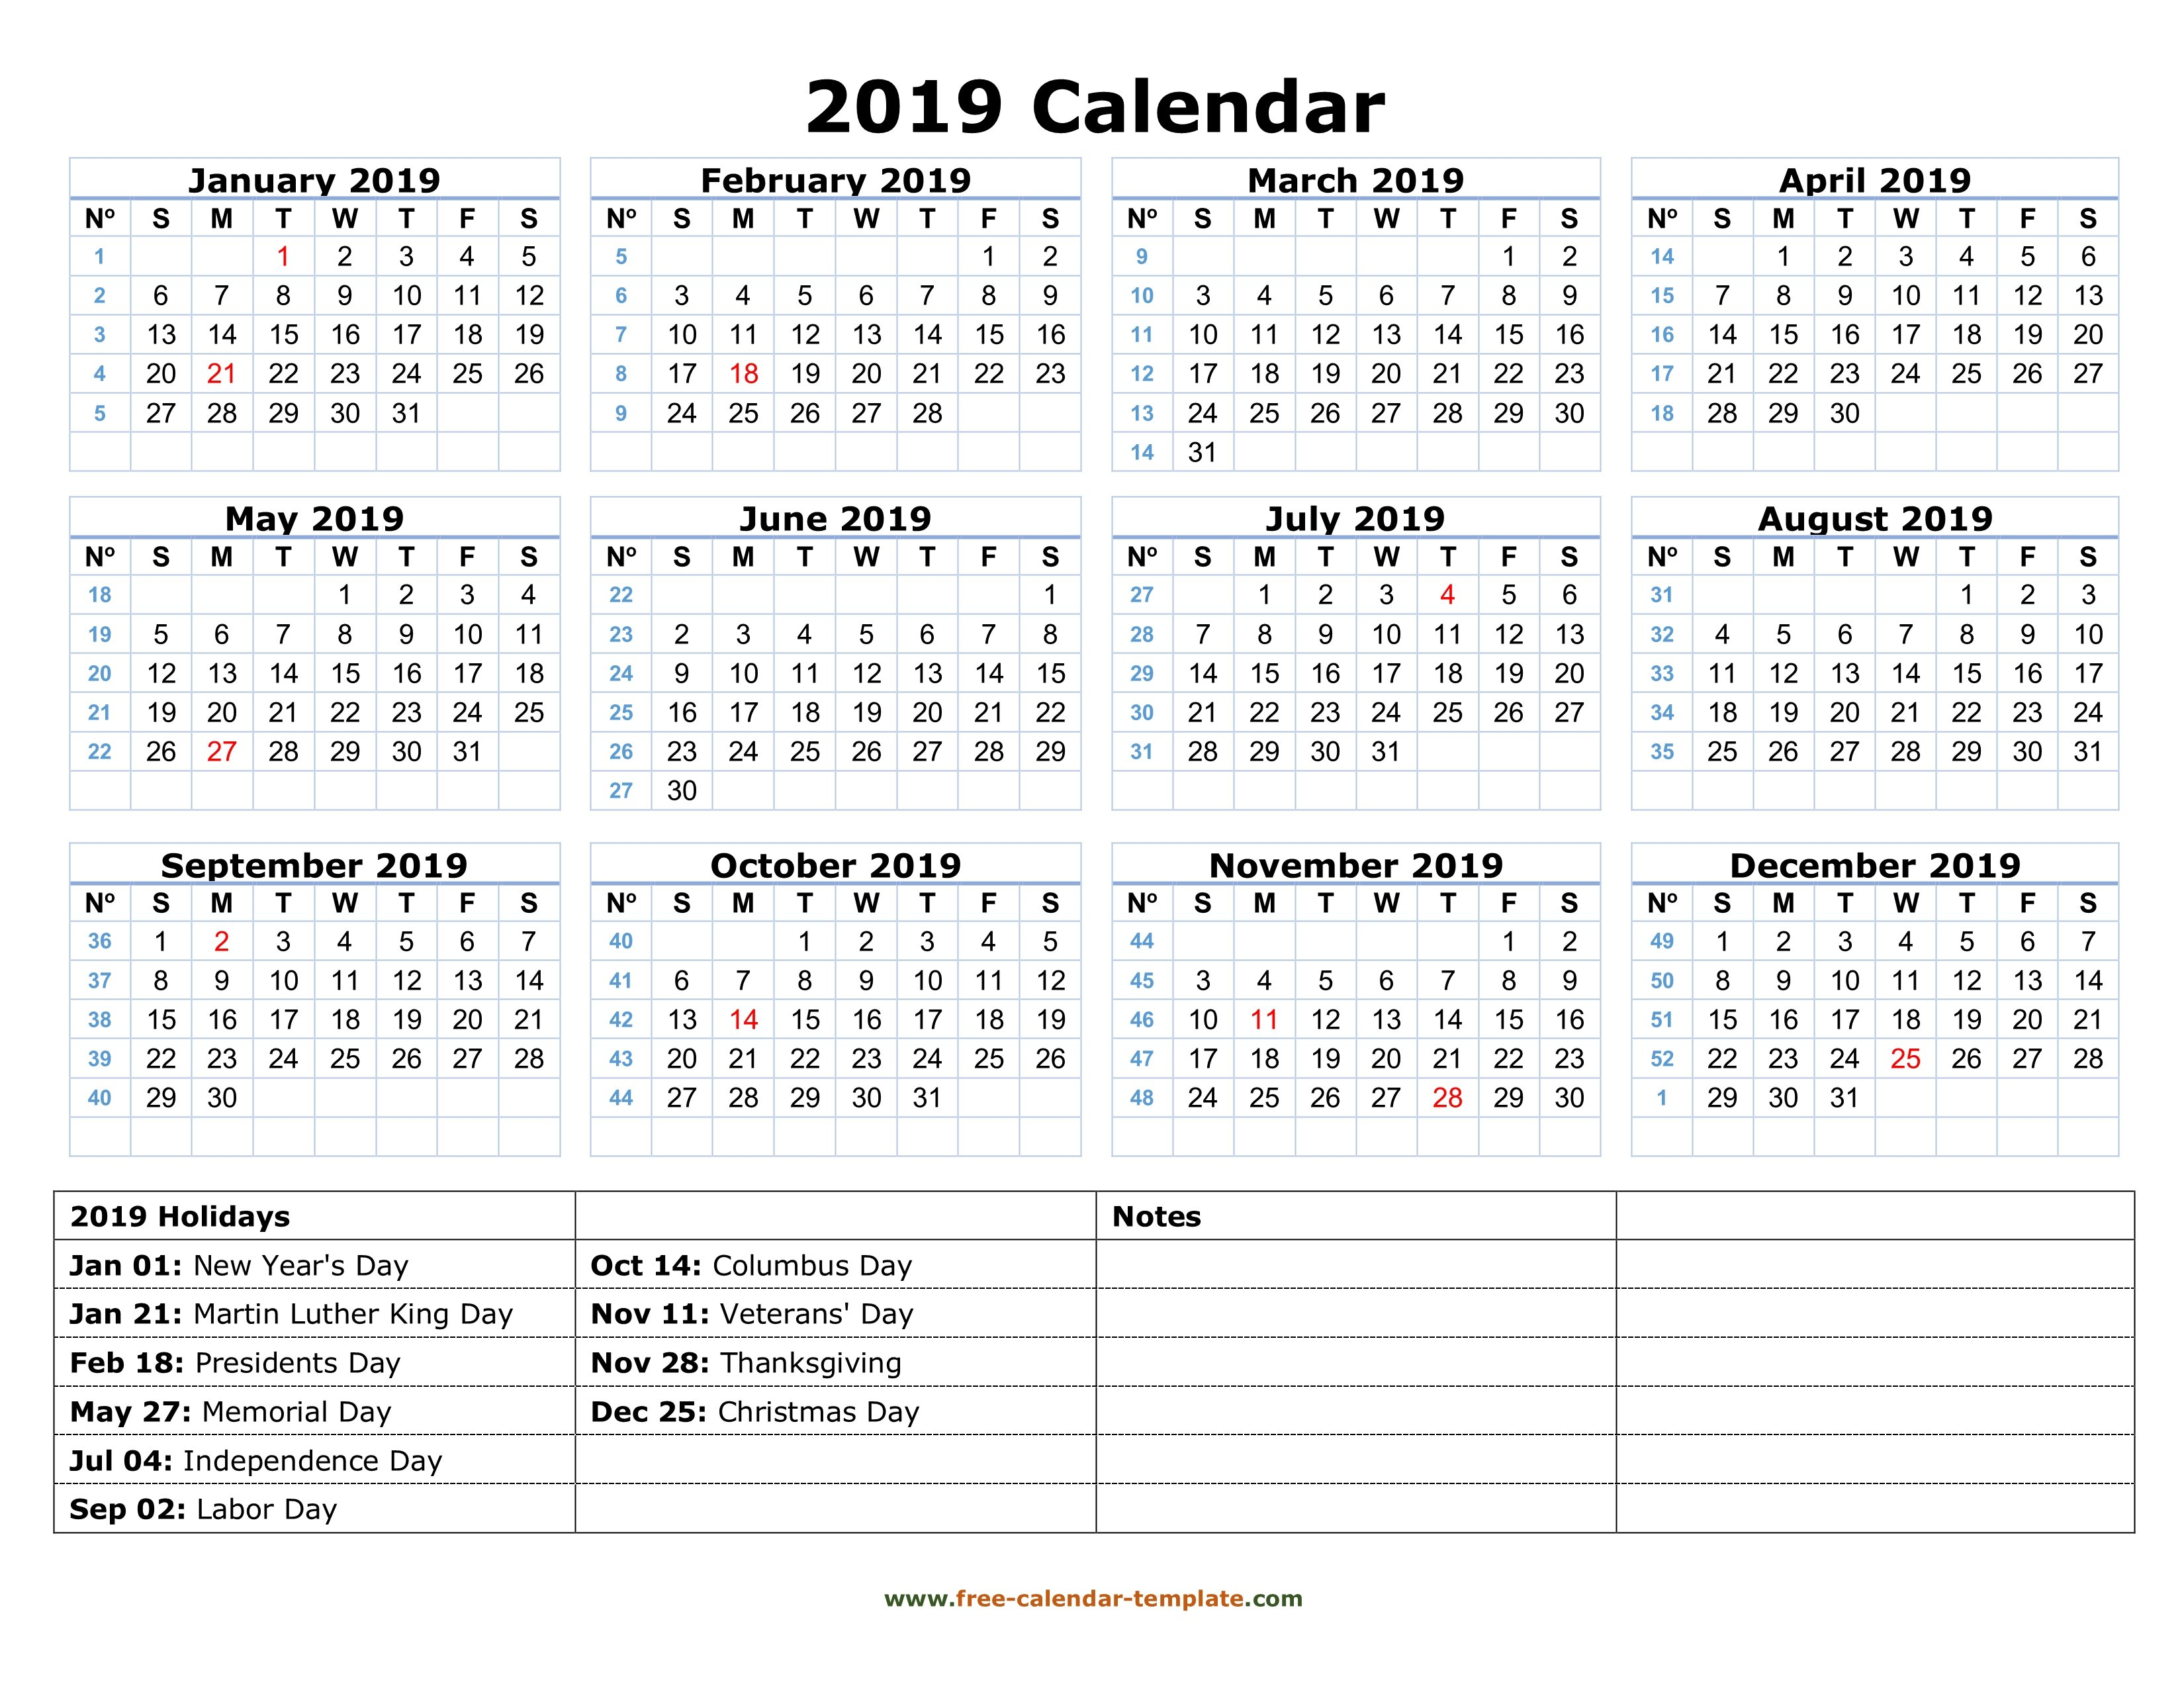 Printable Yearly Calendar 2019 With Us Holidays   Free Calendar Calendar 2019 With Holidays Printable